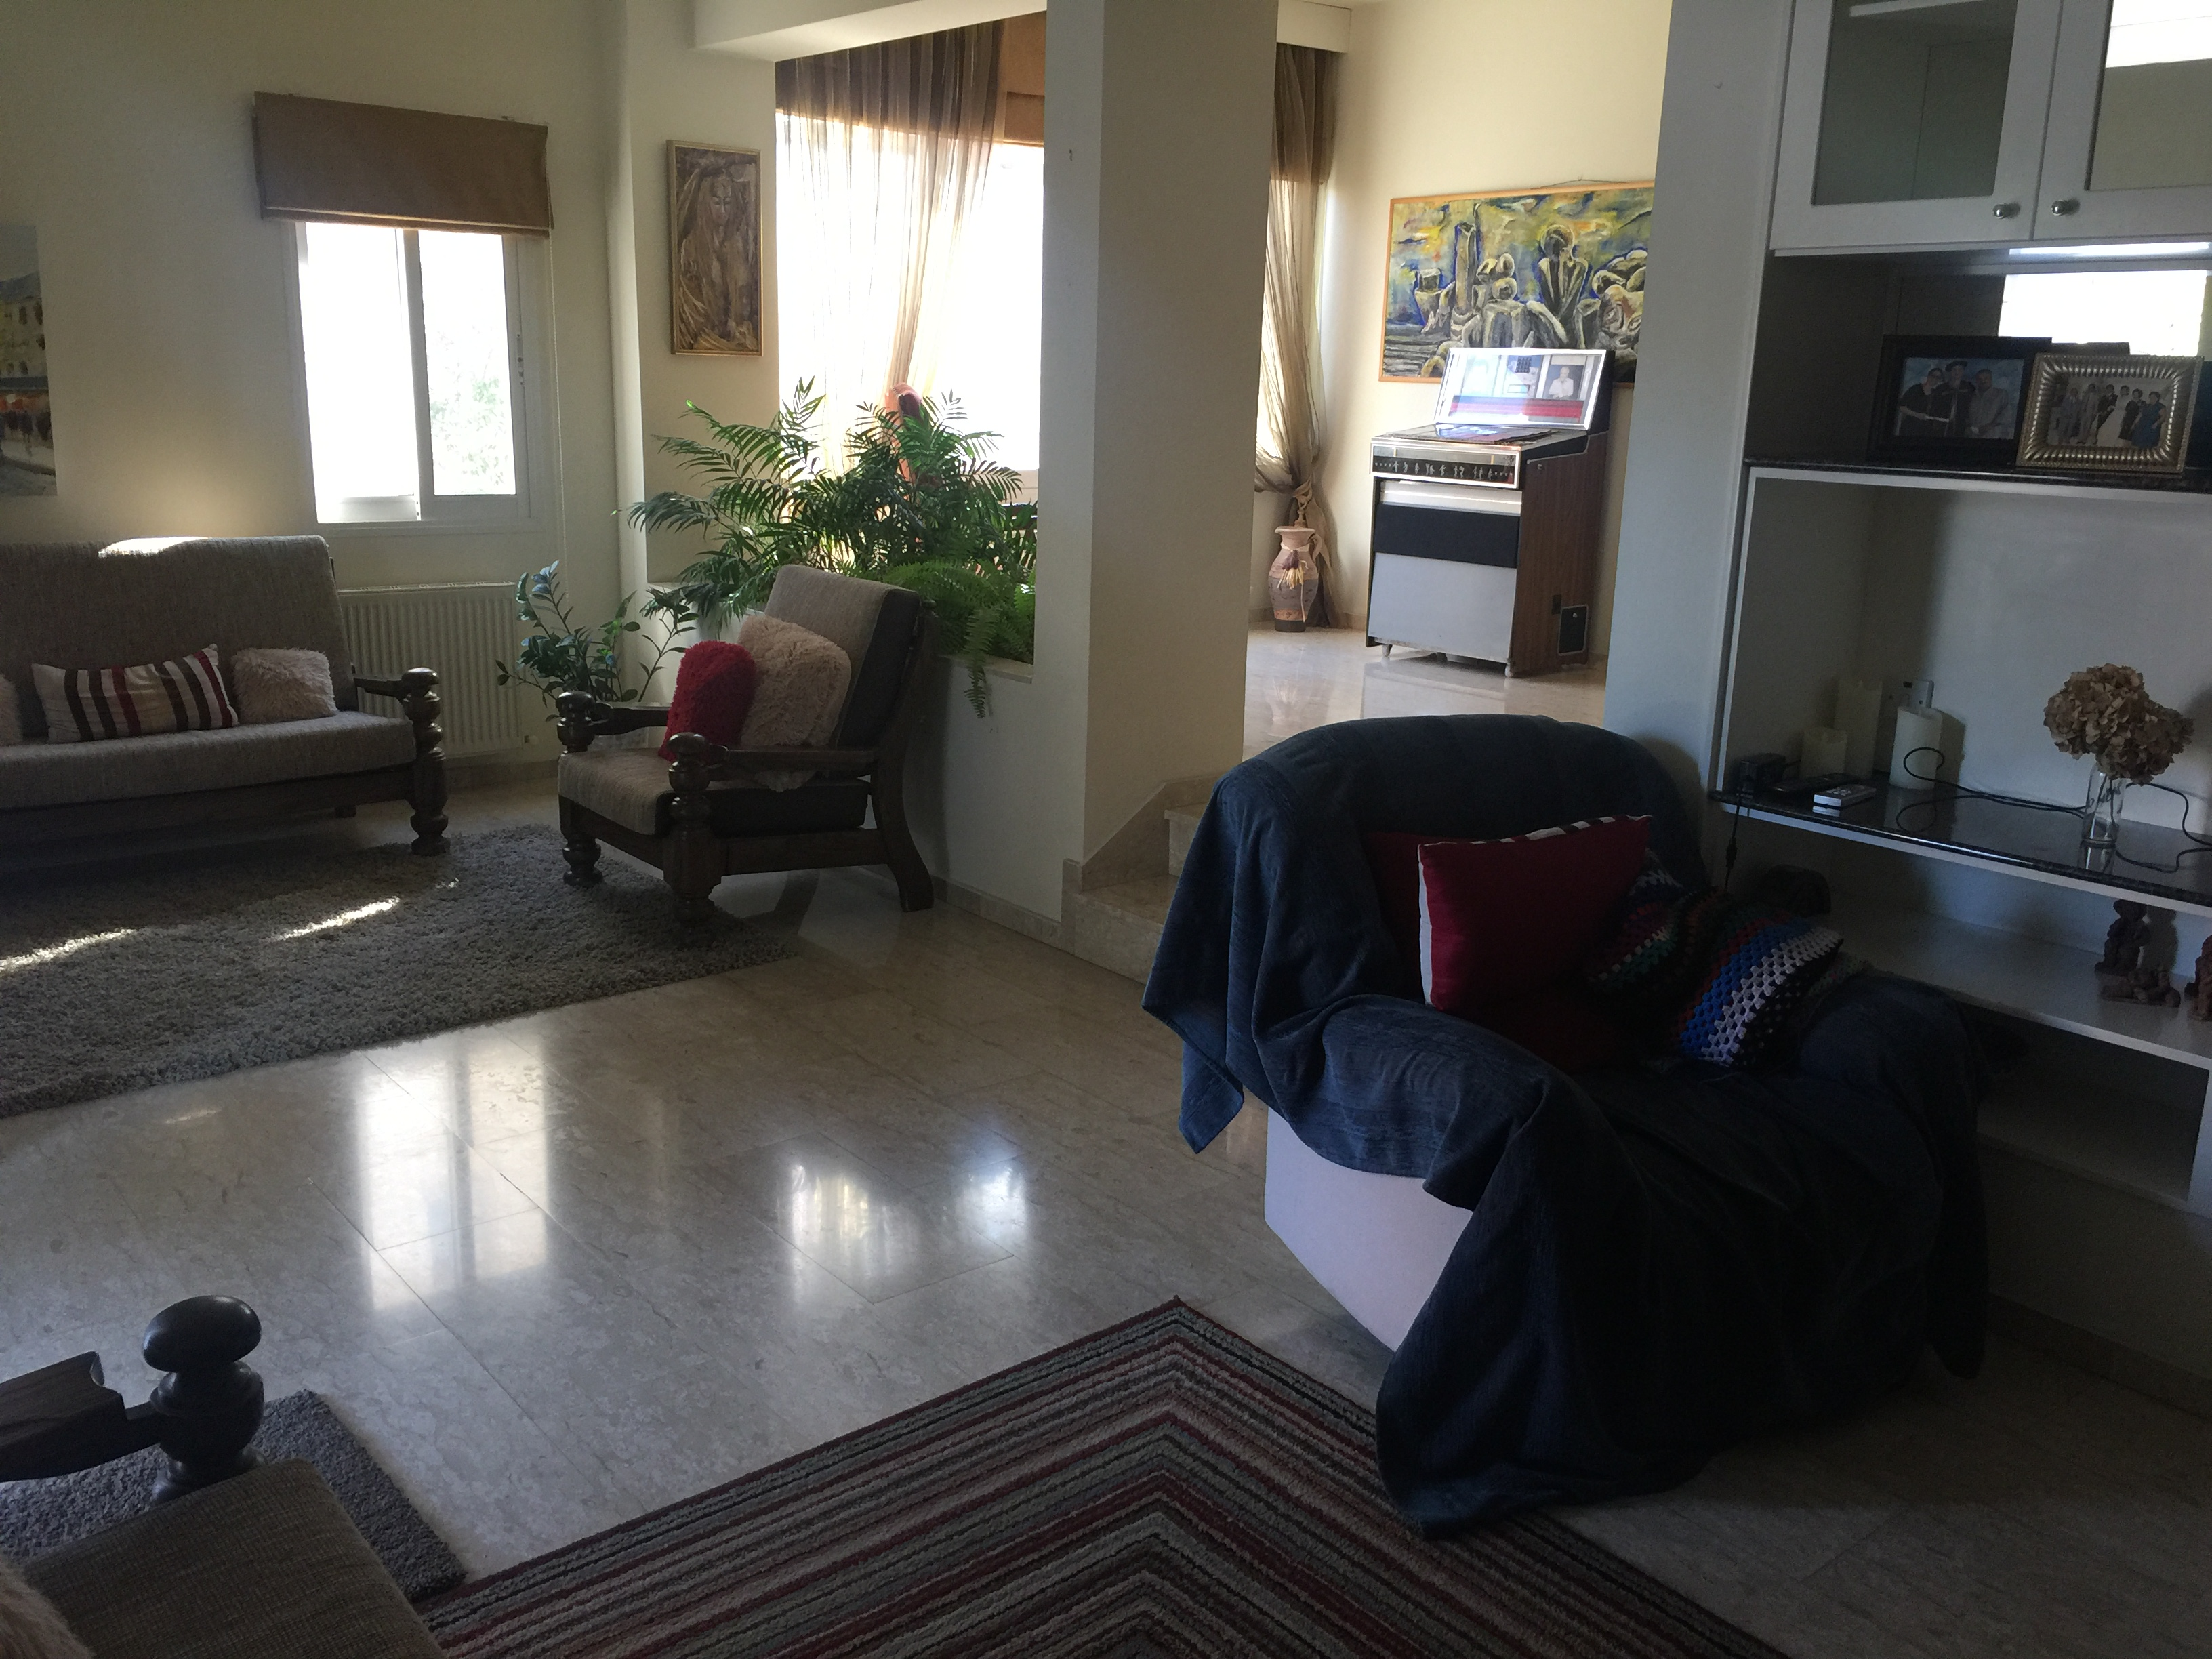 4 bedroom beautiful Detached and spacious house in the area of Columbia